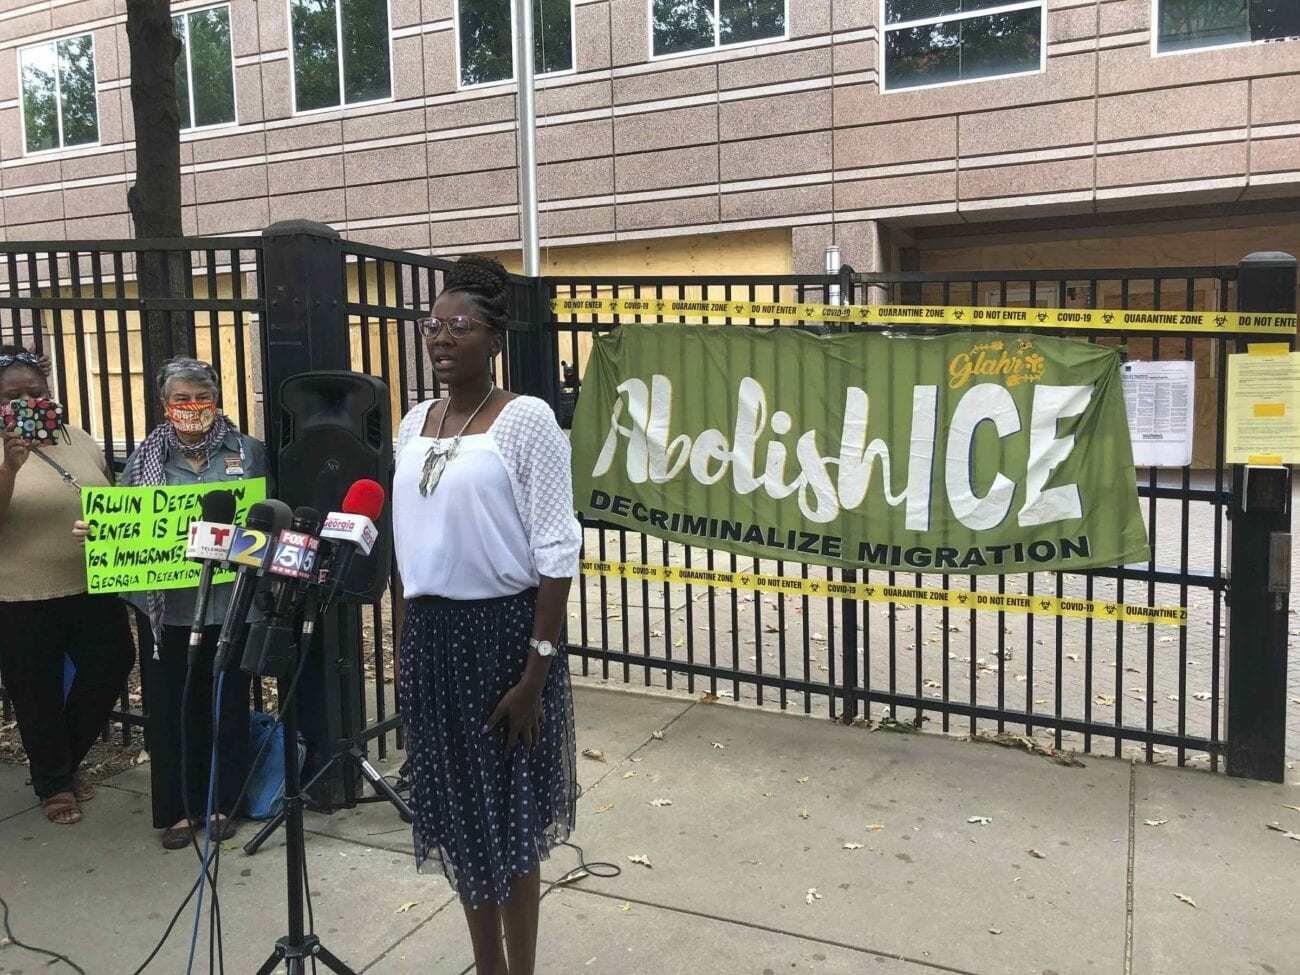 Here are just a few of the stories these women have shared and what horror they faced while in ICE Detention Centers.